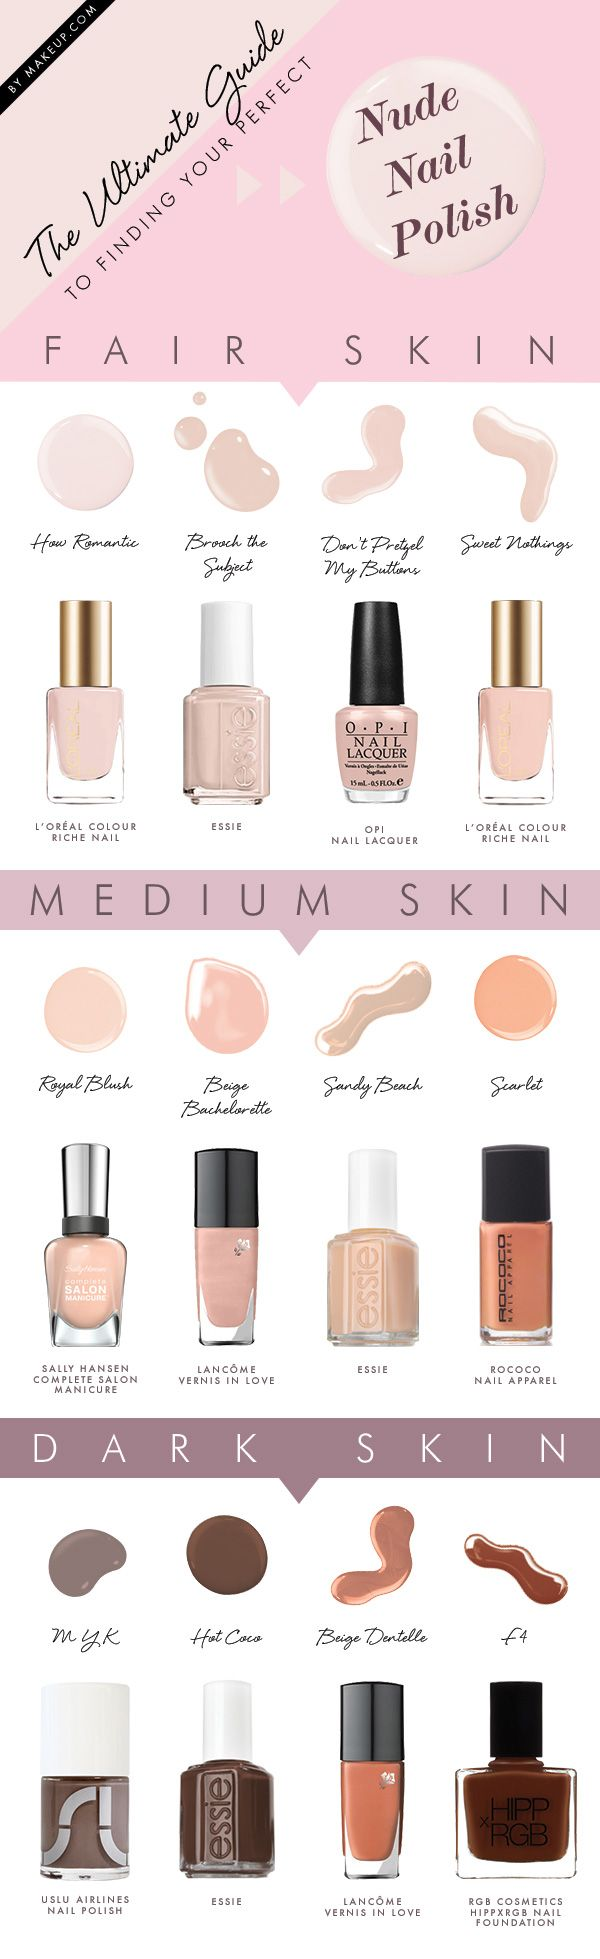 Nude manicures are all the rave and have we got the right nude nail tips for you! When the mood strikes and you're ready to ditch the colors and go back to basics, be sure that you're choosing the right nude for your skin tone. Elegnatly elongate your lady fingers with the MDC complete guide to nude nail polish!